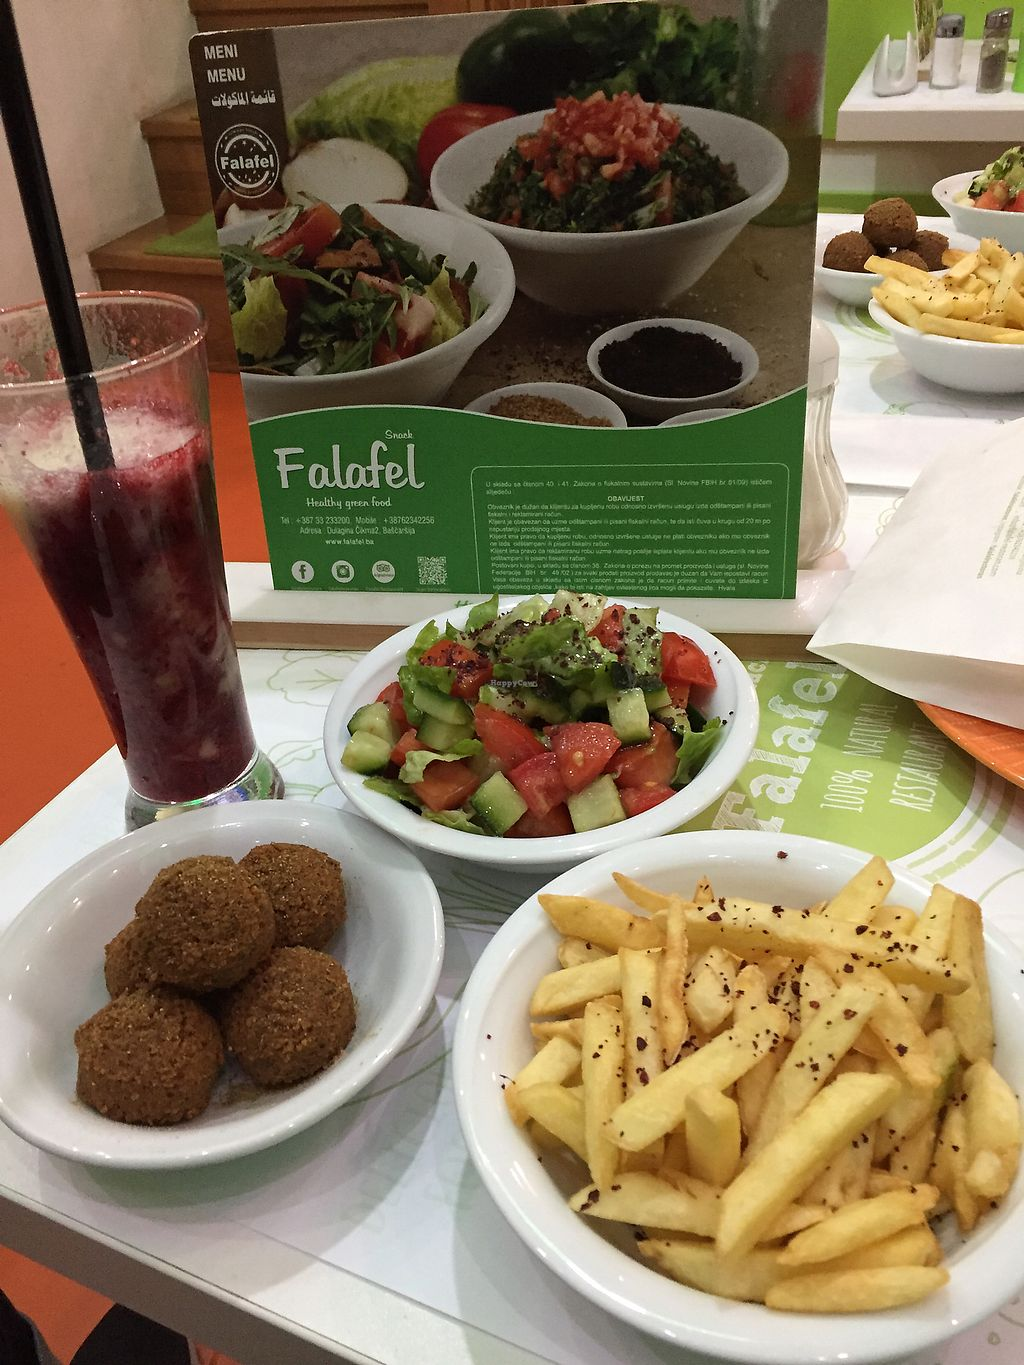 """Photo of Falafel  by <a href=""""/members/profile/danhosk"""">danhosk</a> <br/>Very good! <br/> January 7, 2018  - <a href='/contact/abuse/image/74438/344113'>Report</a>"""